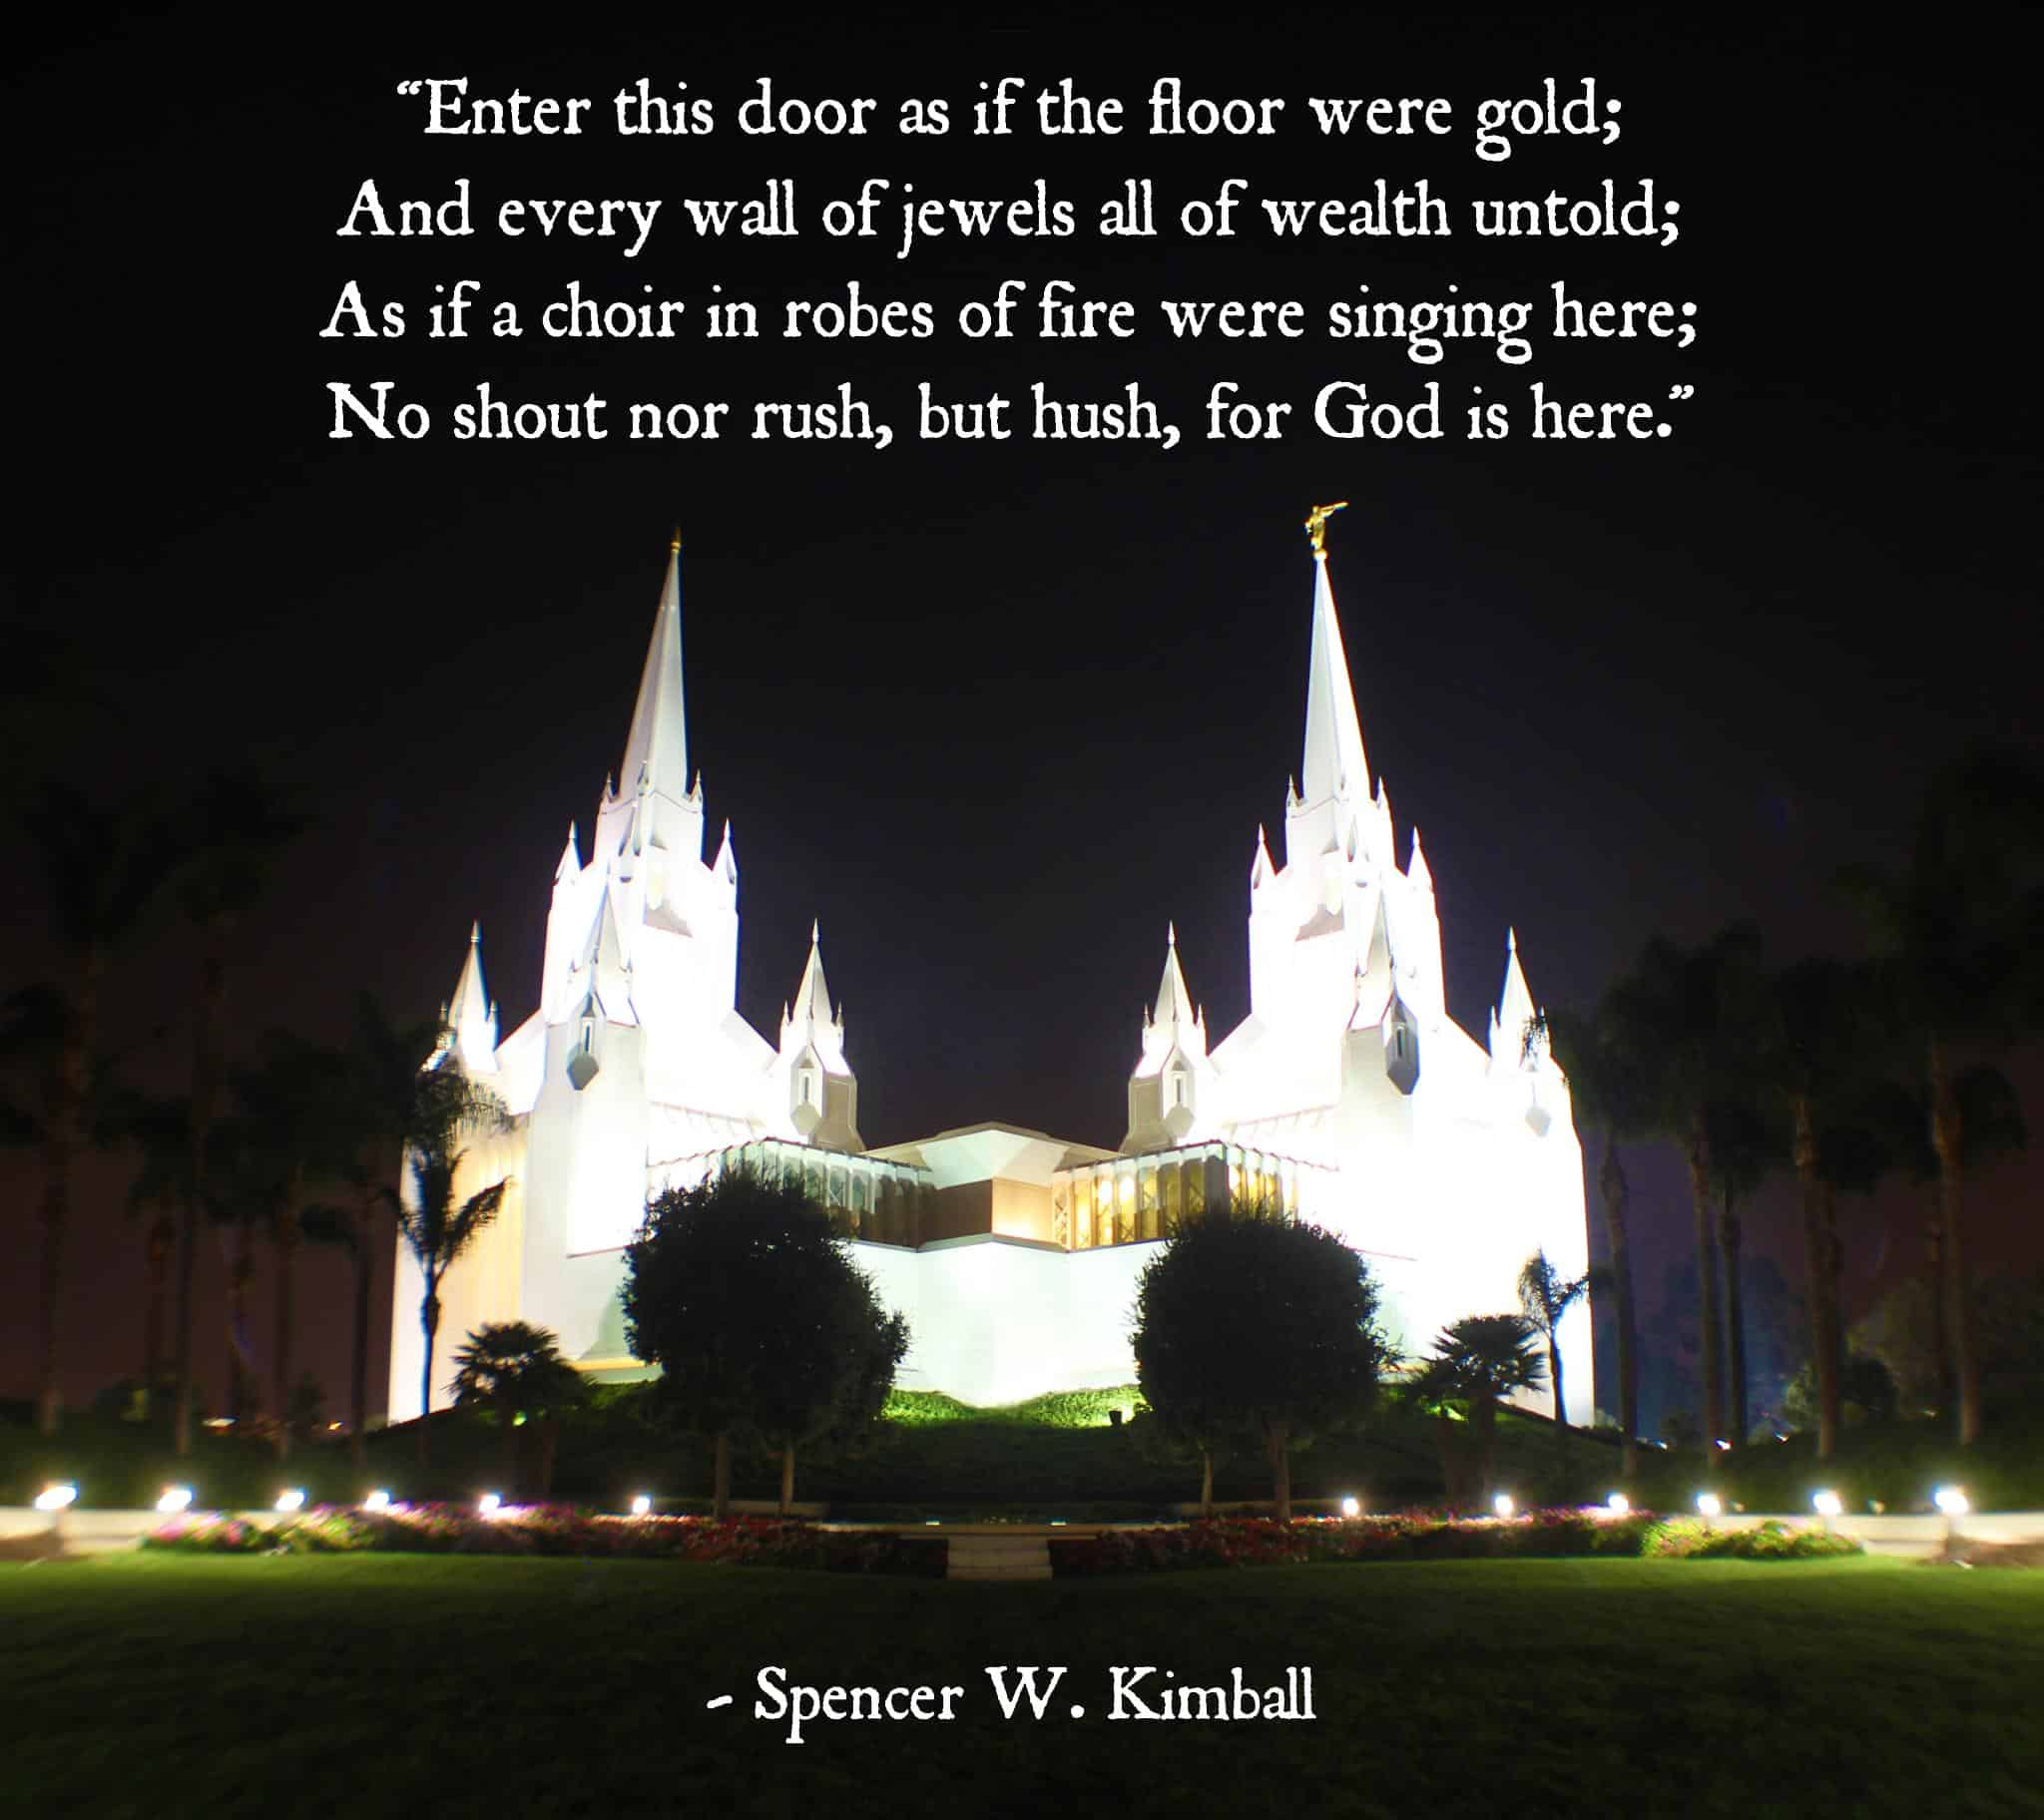 LDS Temples and Mormon Temple quotes